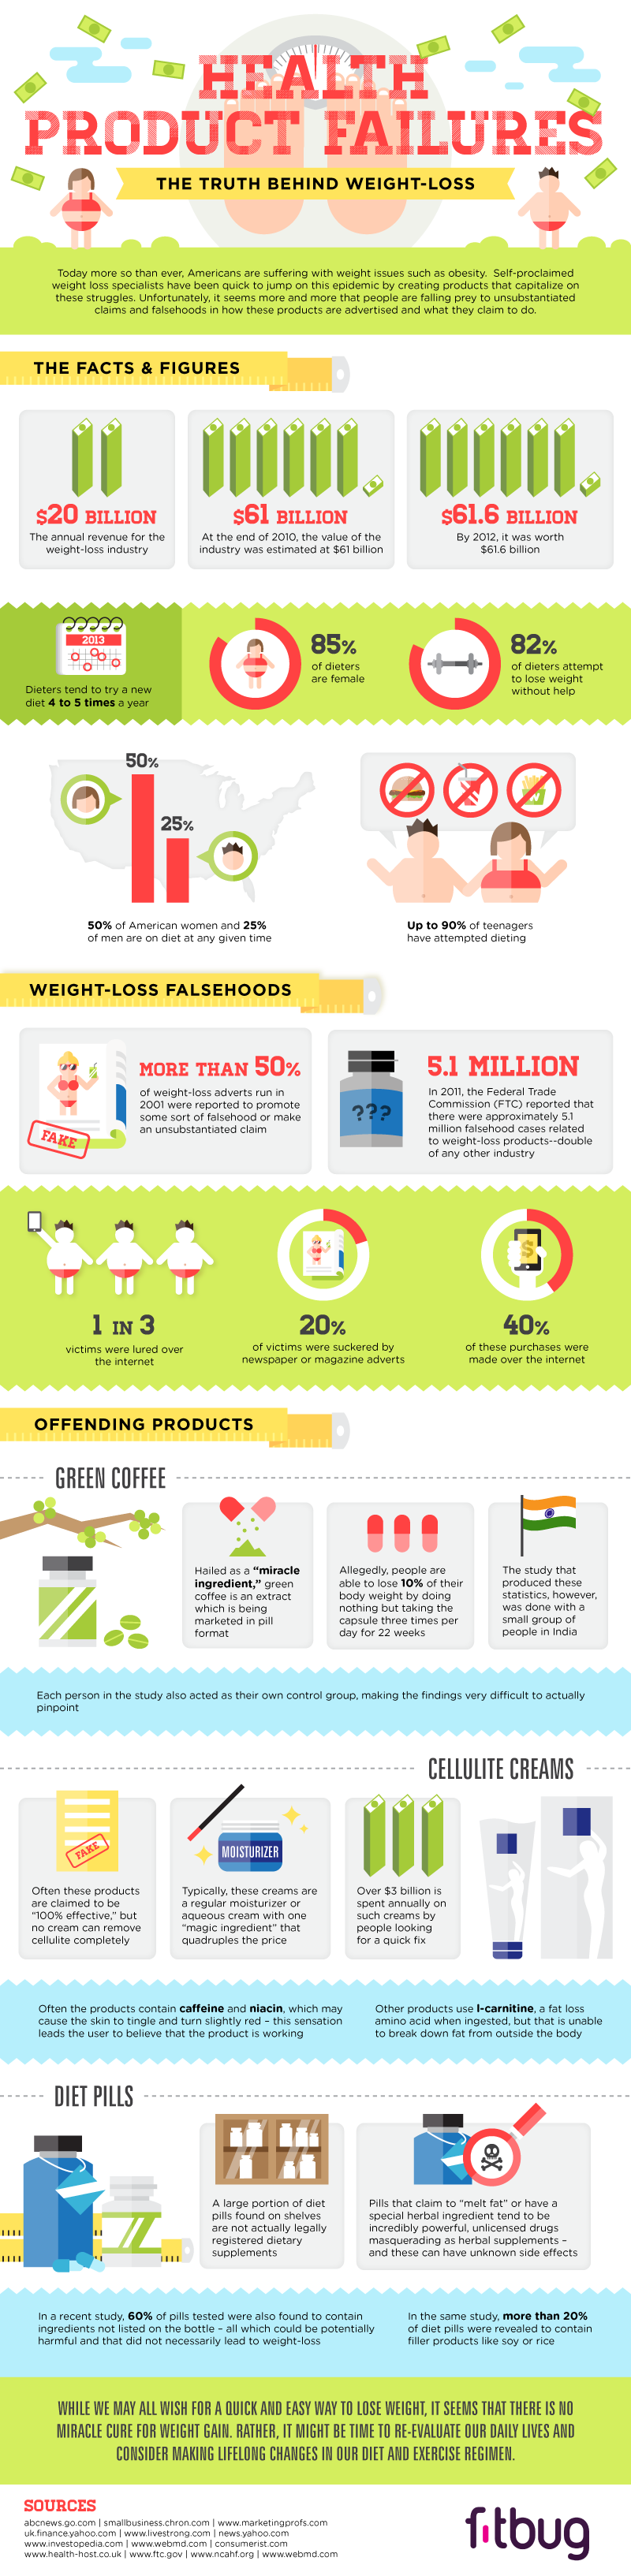 Infographic: Health Product Failures, The Truth Behind Weight Loss